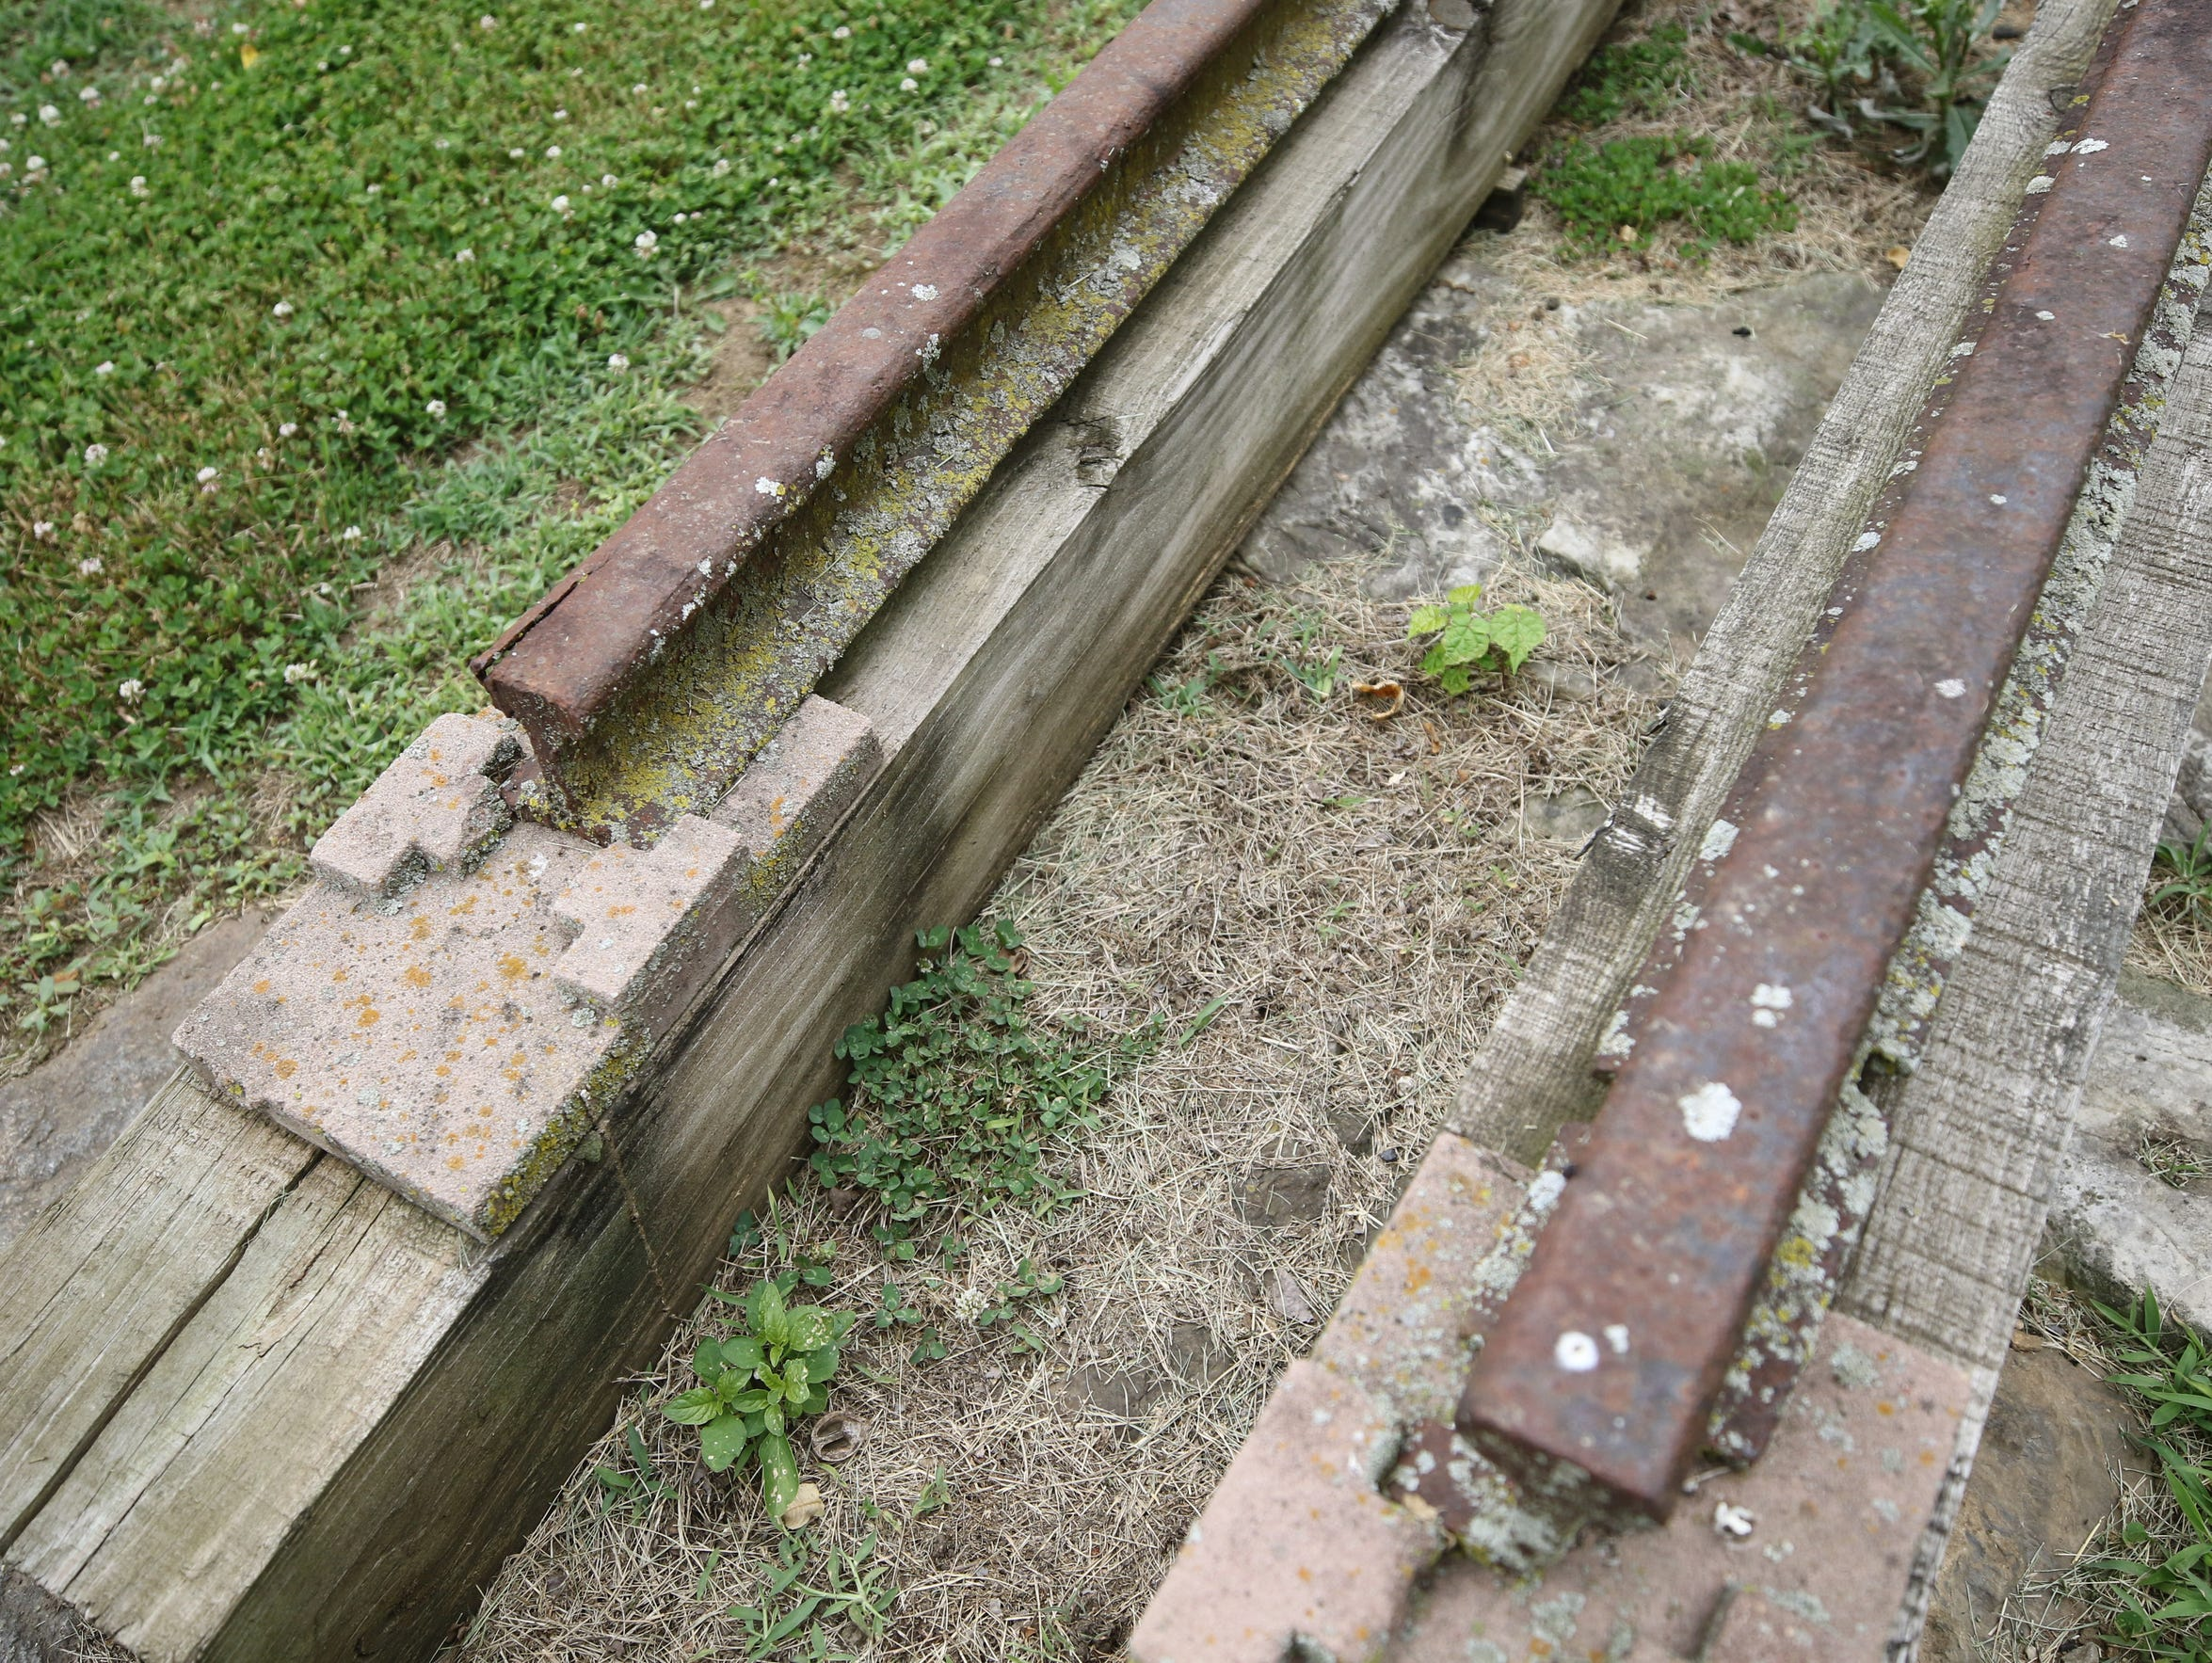 What's left of the rails that were part of the inclined